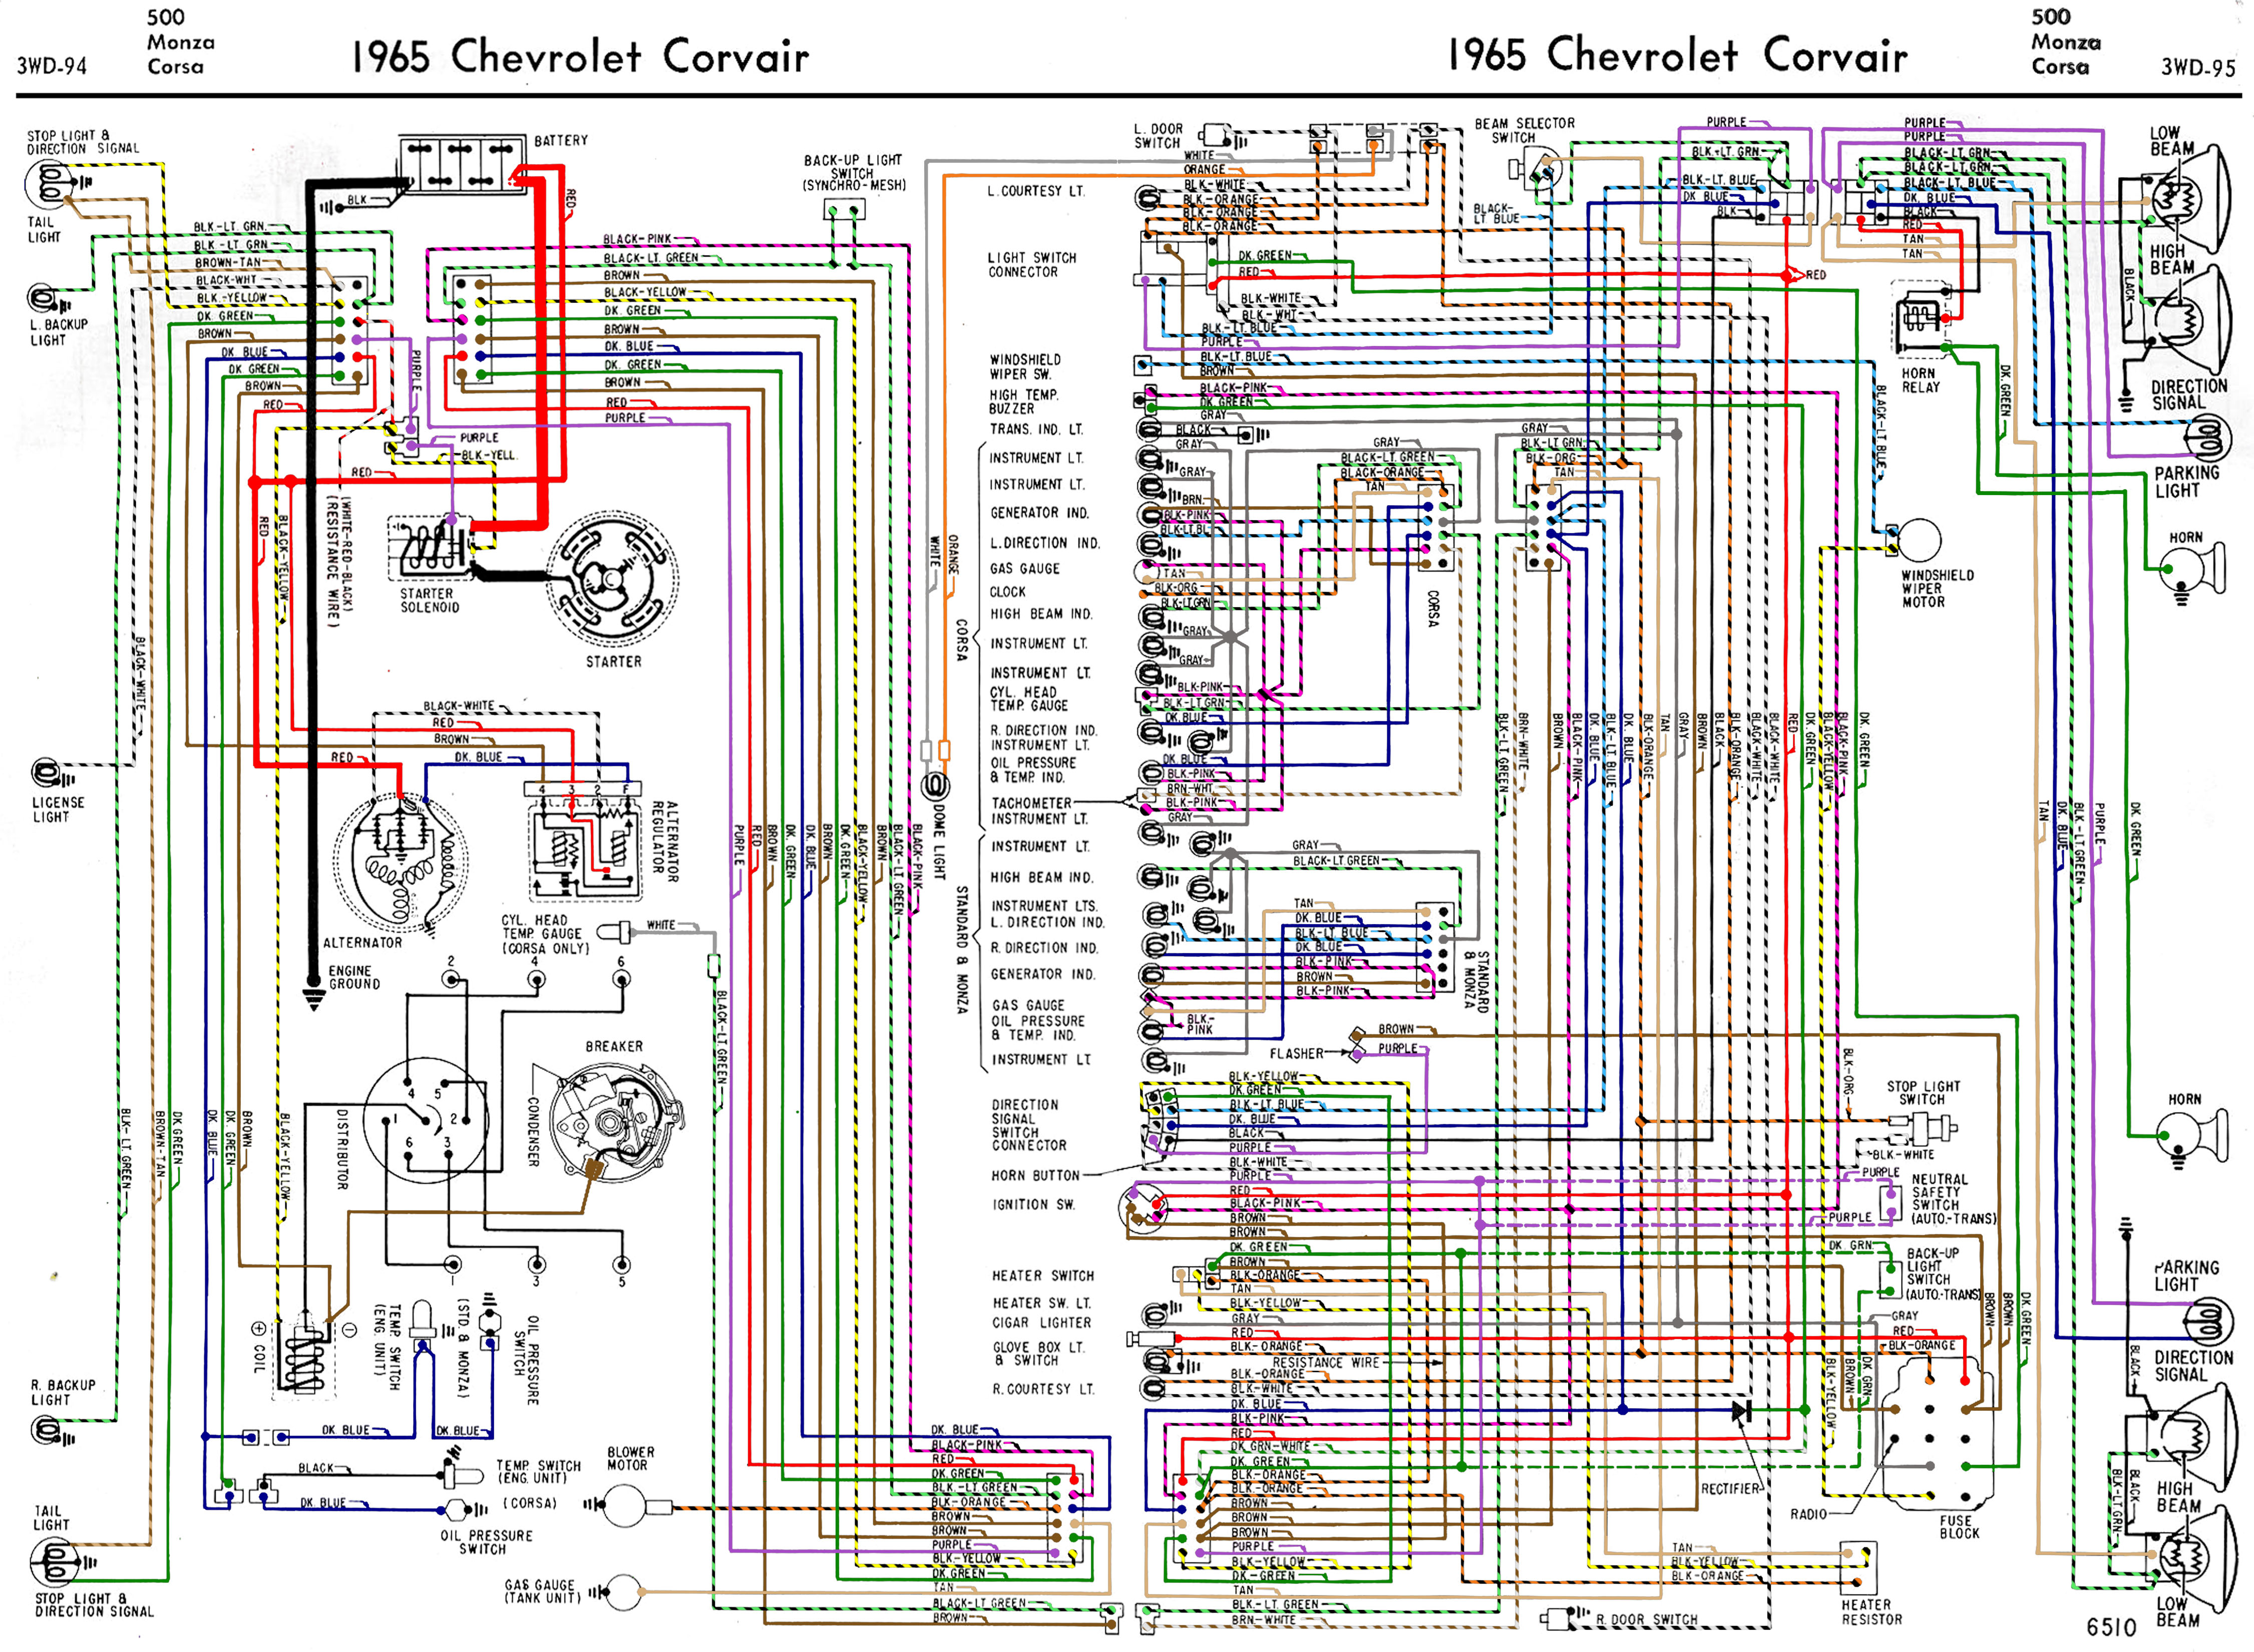 1965 Chevrolet Malibu Wiring Diagram For